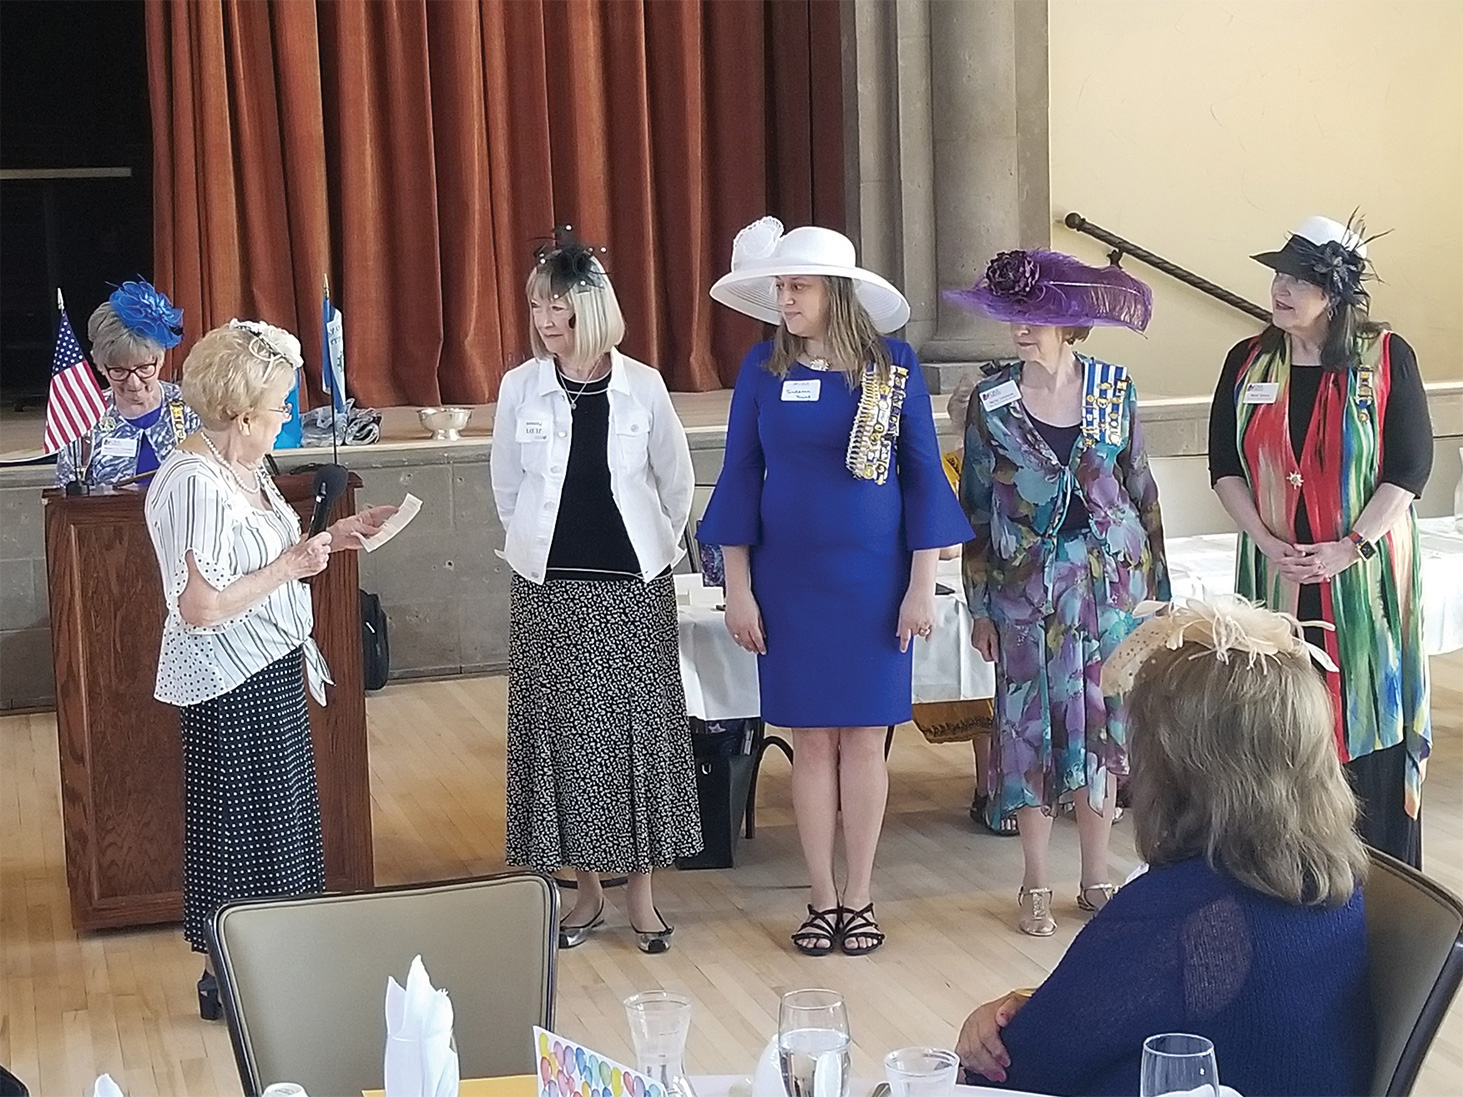 Pattie Colman, chaplain, swearing in new officers Judy Putnam, historian; Suzanne Young, vice regent; Mitzi Iverson, corresponding secretary; and Mary Knape, librarian